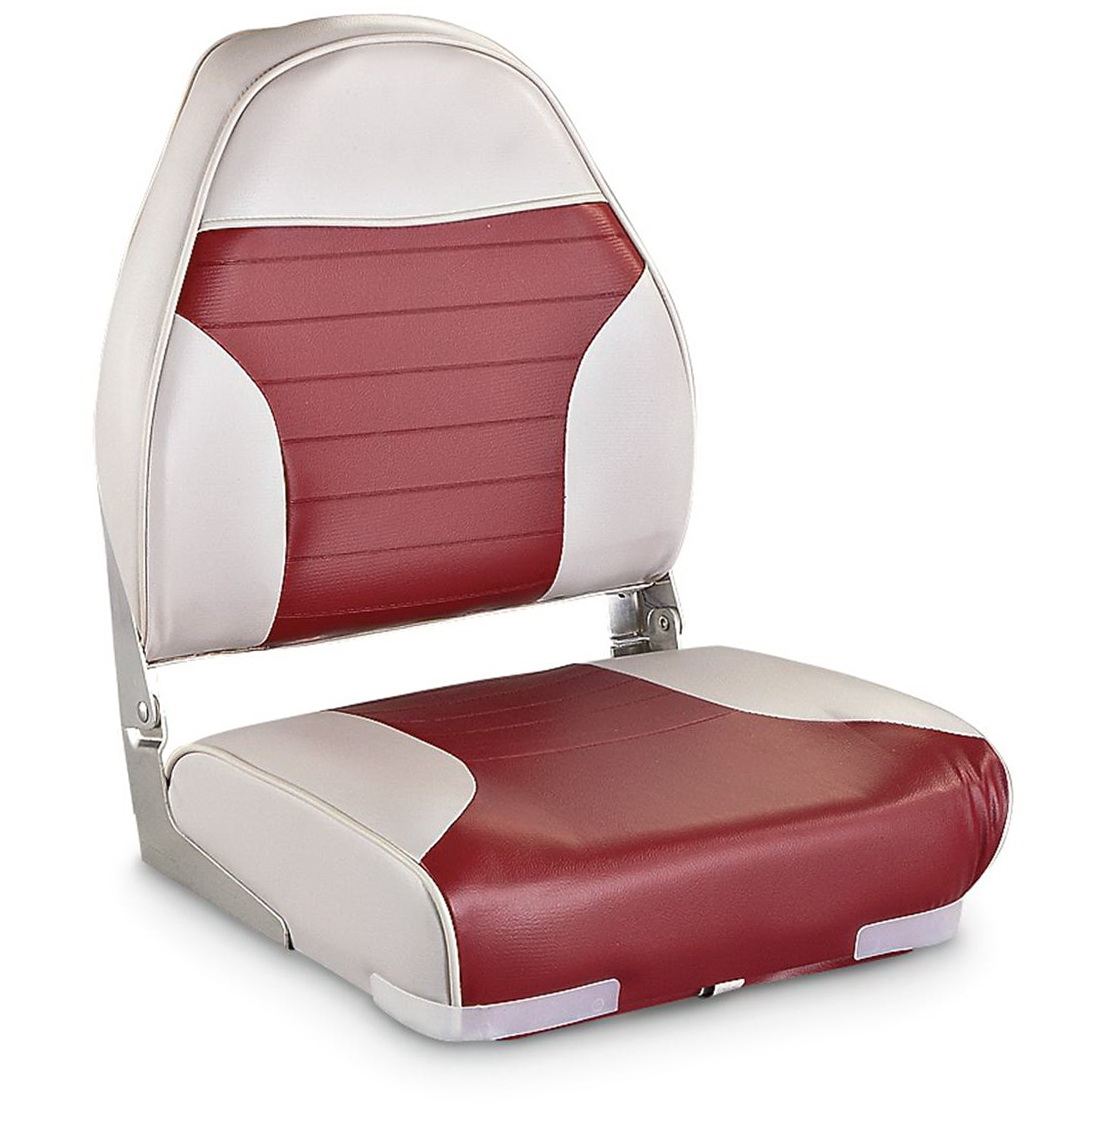 Boat Seat Cushions Walmart Home Design Ideas